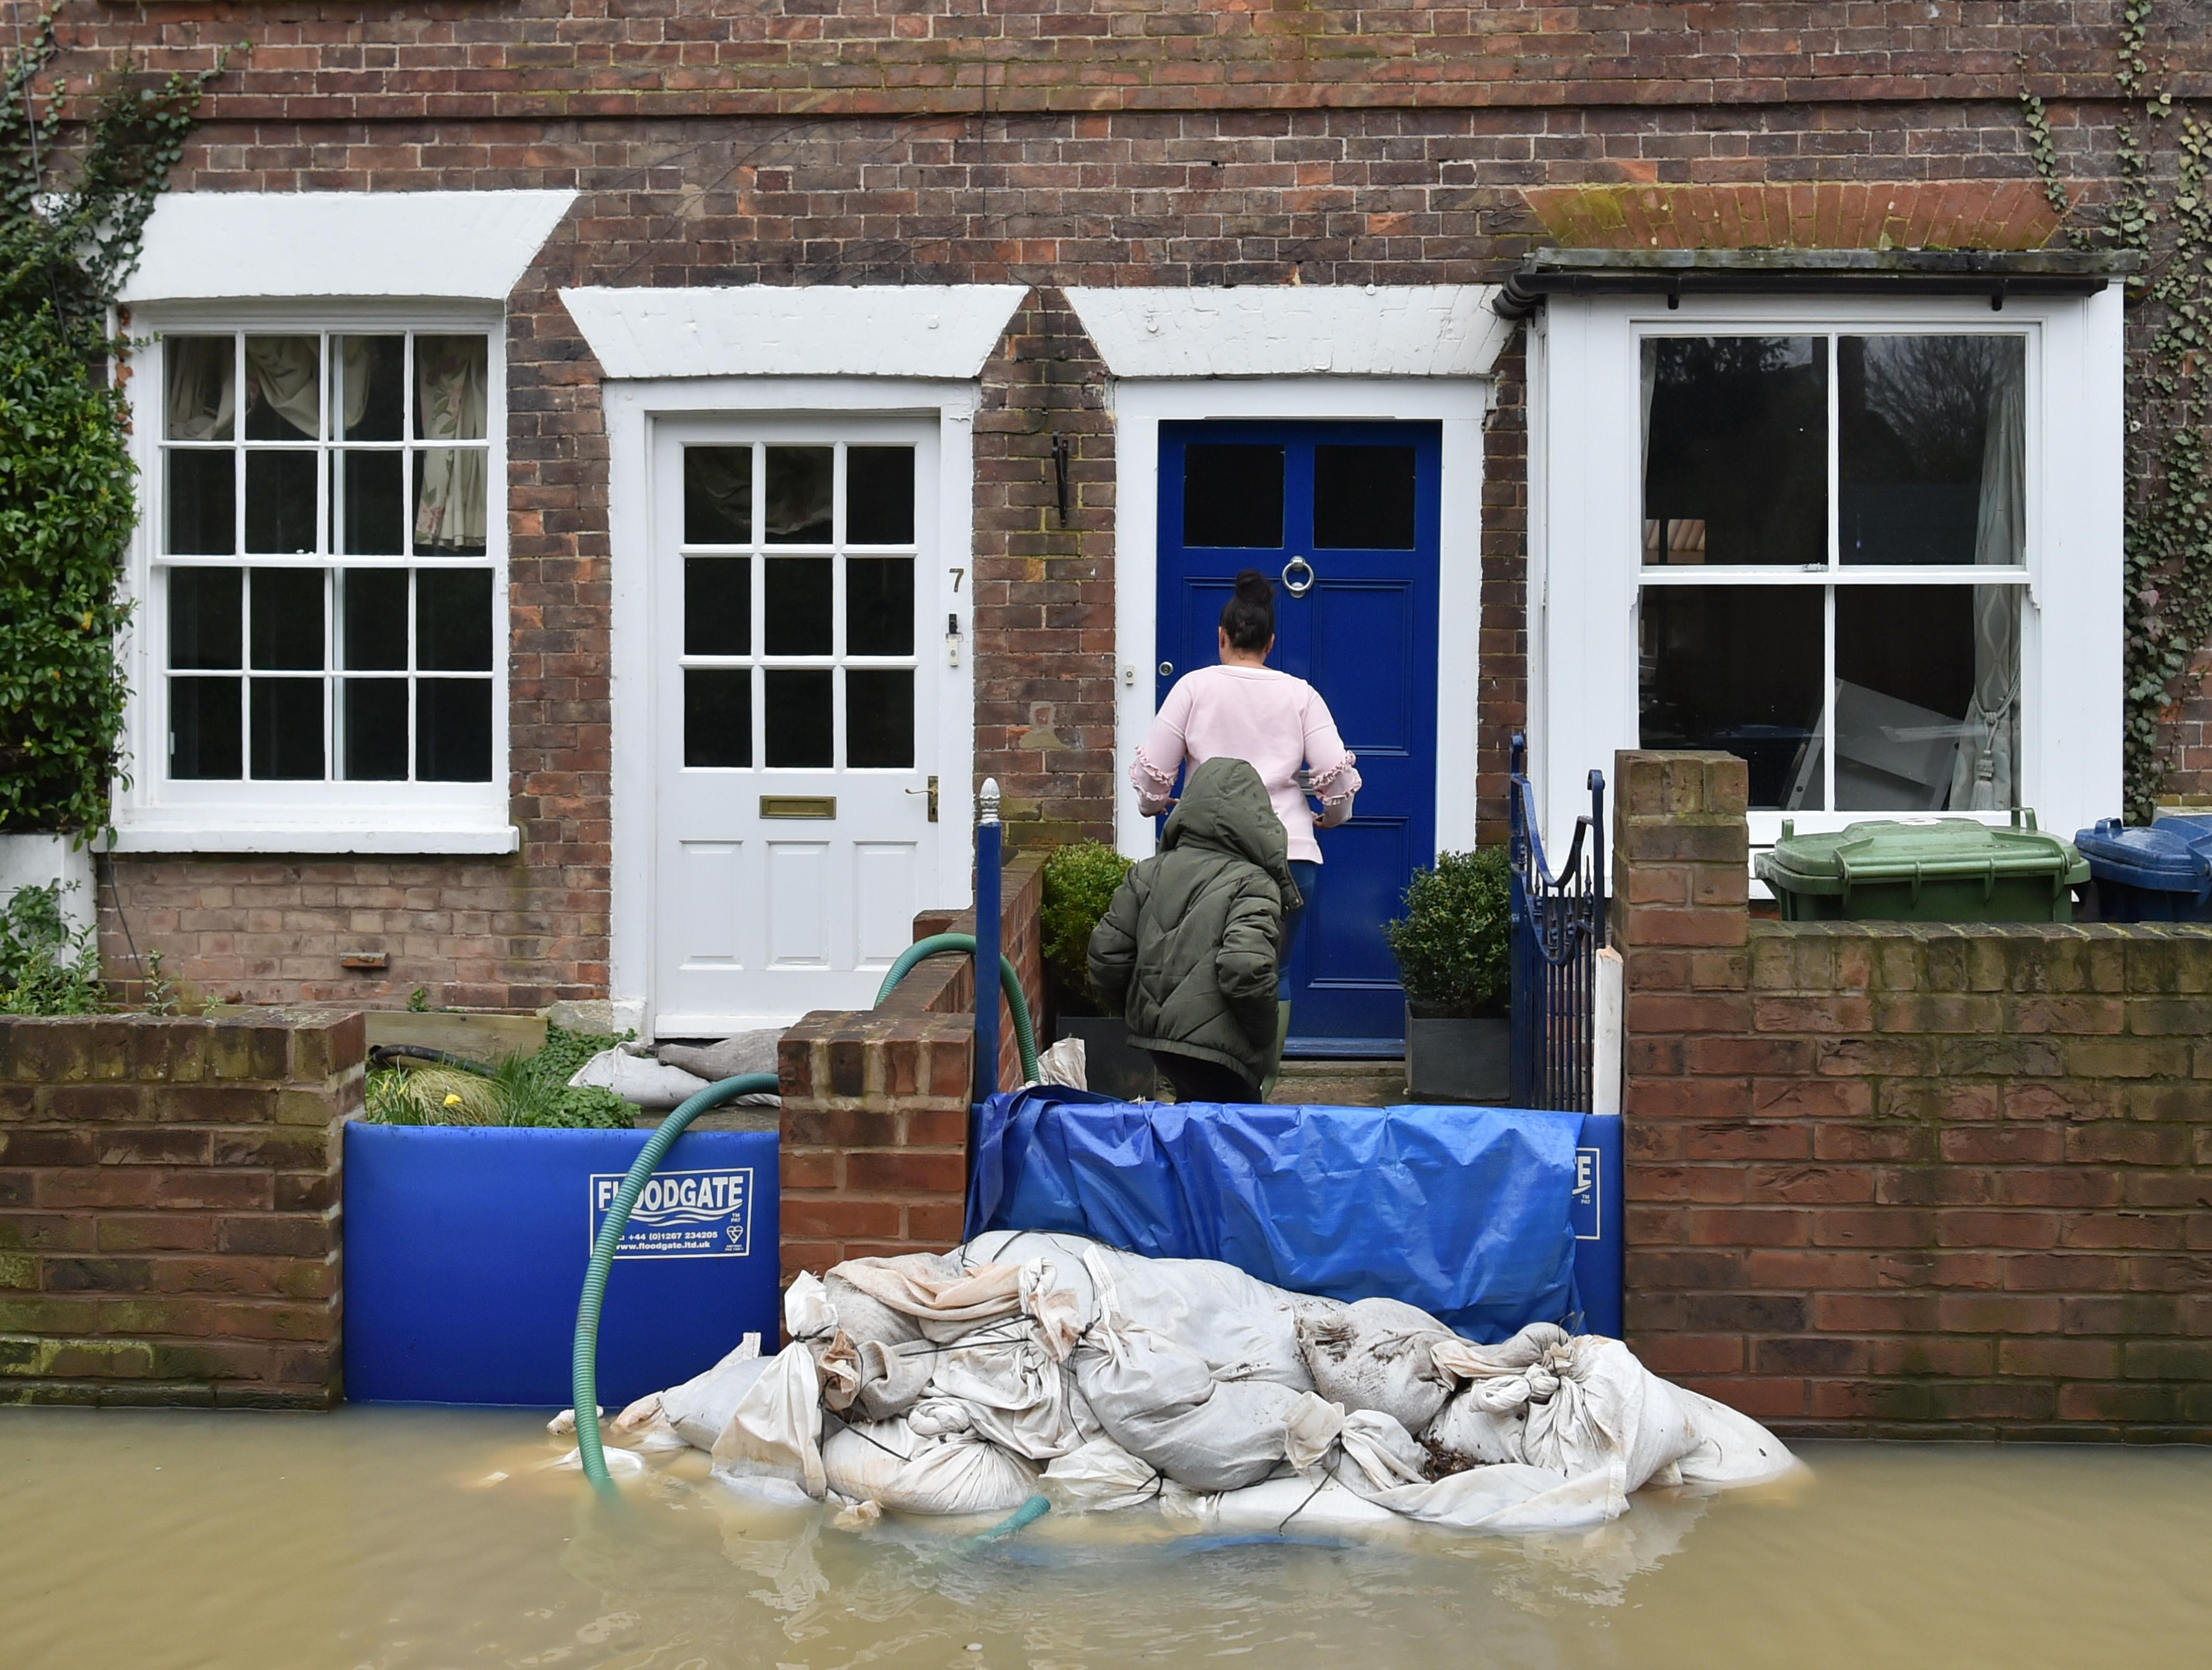 A woman and child enter a cottage in Gloucester Road in Tewkesbury, Gloucestershire, as pumps and flood barriers help to keep the water from flooding the properties, following the aftermath of Storm Dennis.